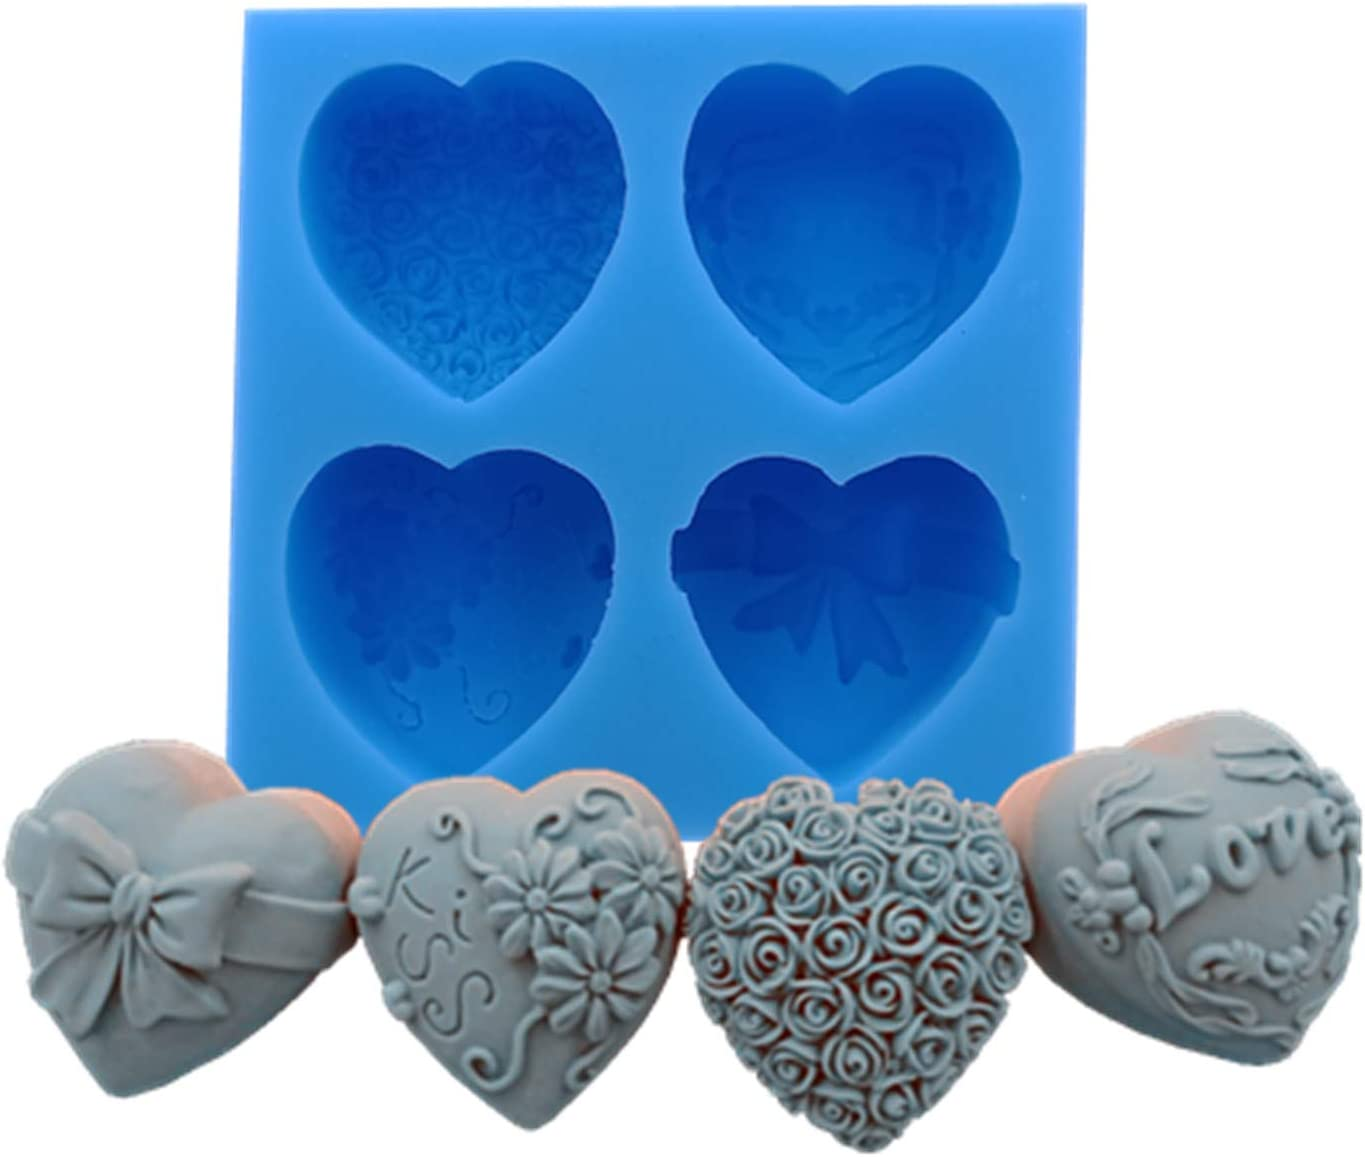 4 Cavities Heart Flower Silicone Soap Mold Food Grade Chocolate Cake Jelly Ice Silicone Molds Scented Candle Wax Mould Gypsum Crafts Silicone Moulds